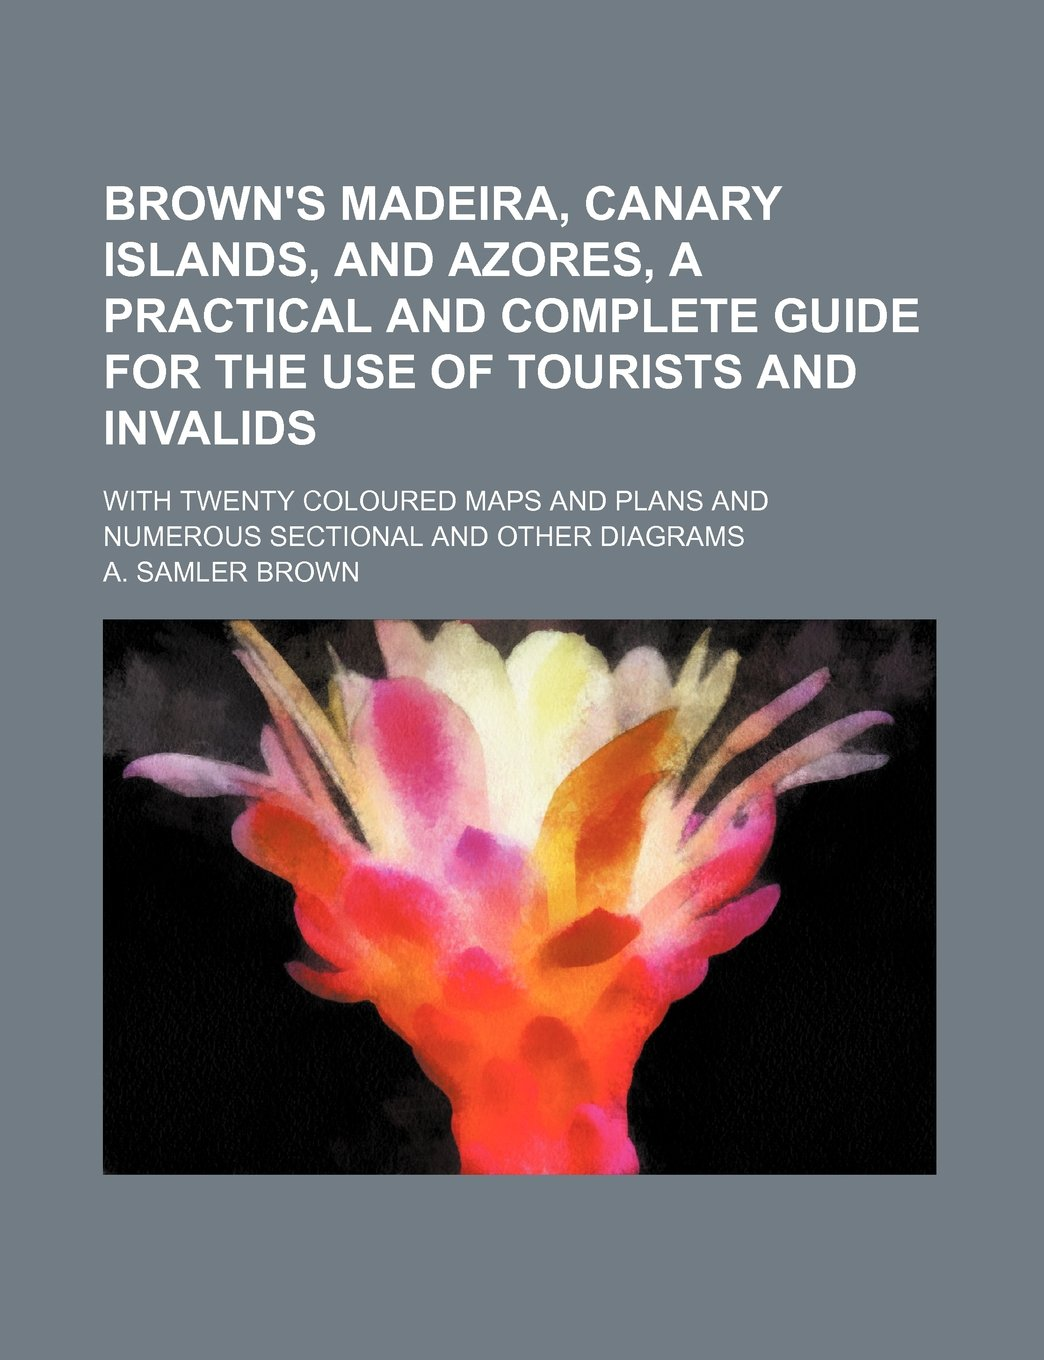 Brown's Madeira, Canary Islands, and Azores, a practical and complete guide for the use of tourists and invalids; with twenty coloured maps and plans and numerous sectional and other diagrams pdf